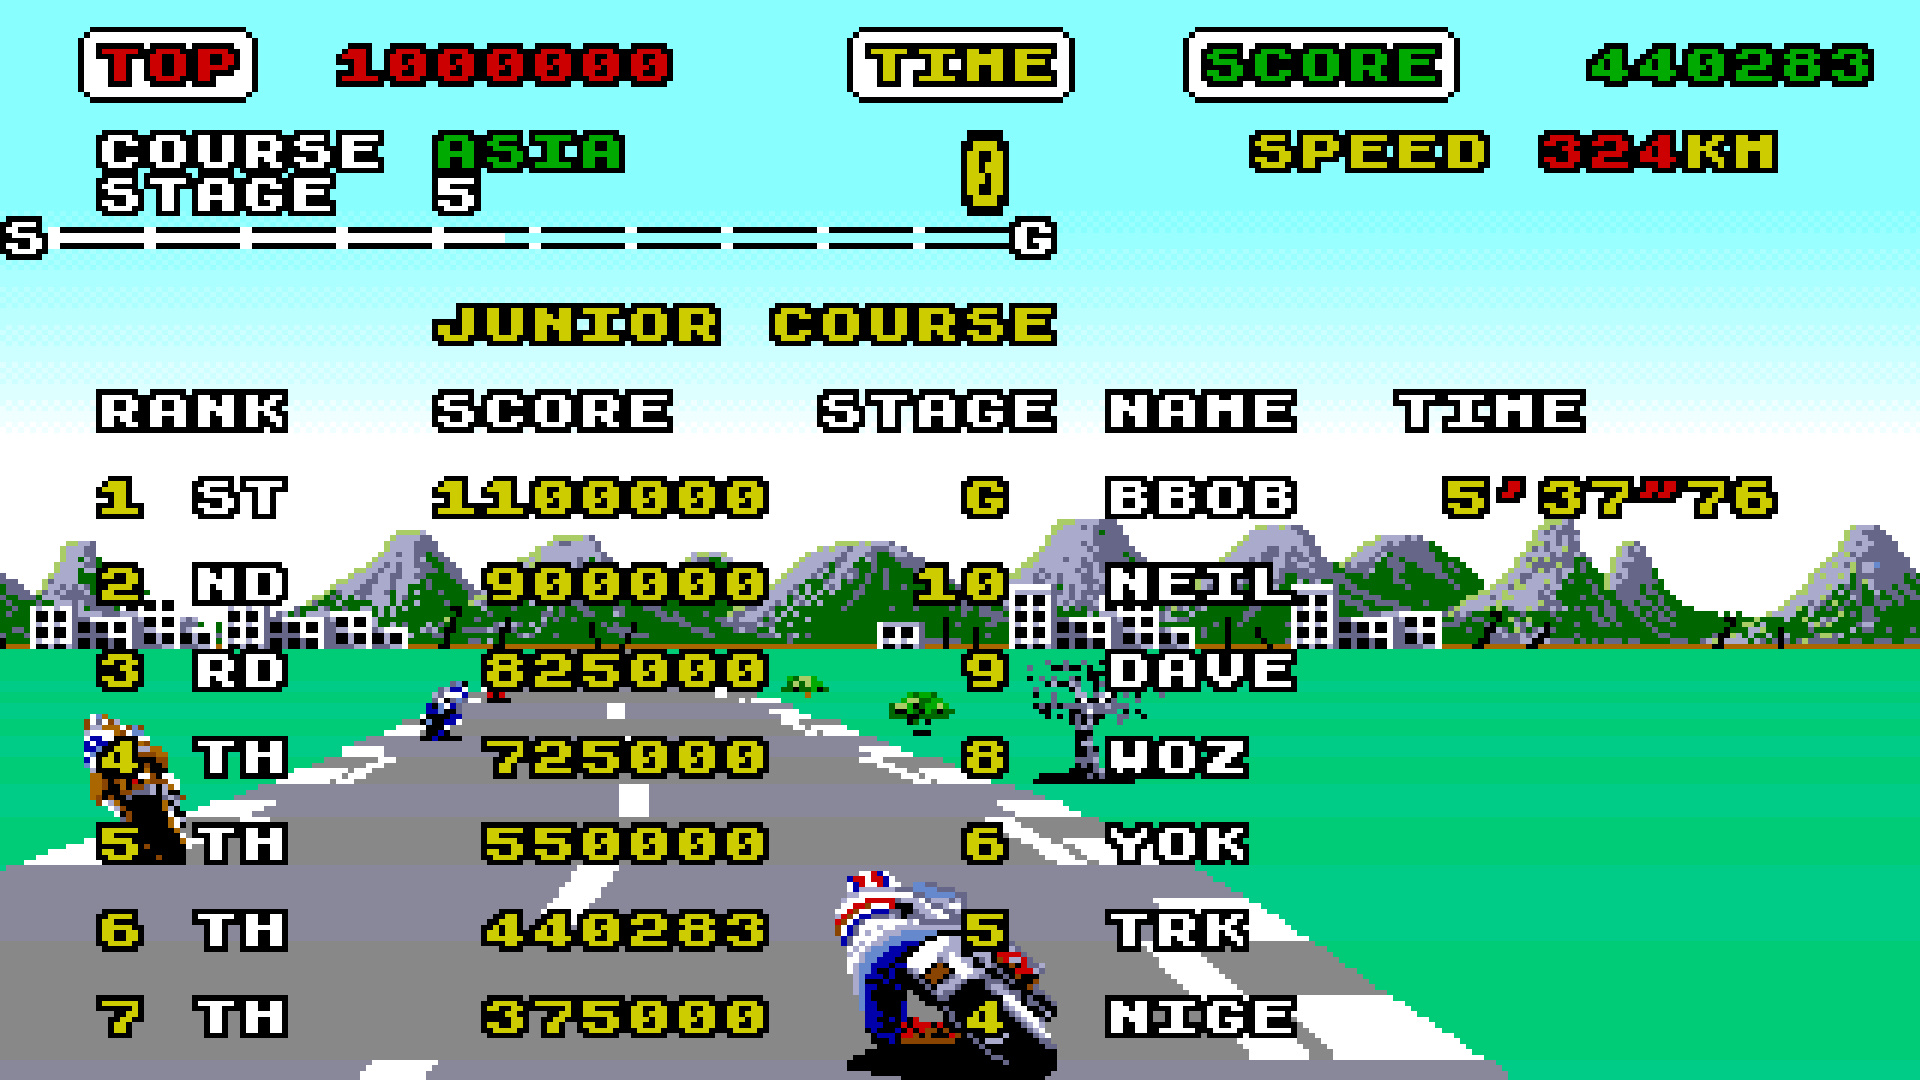 TheTrickster: Super Hang-On [Junior Course] (Amiga Emulated) 440,283 points on 2015-08-06 07:31:28